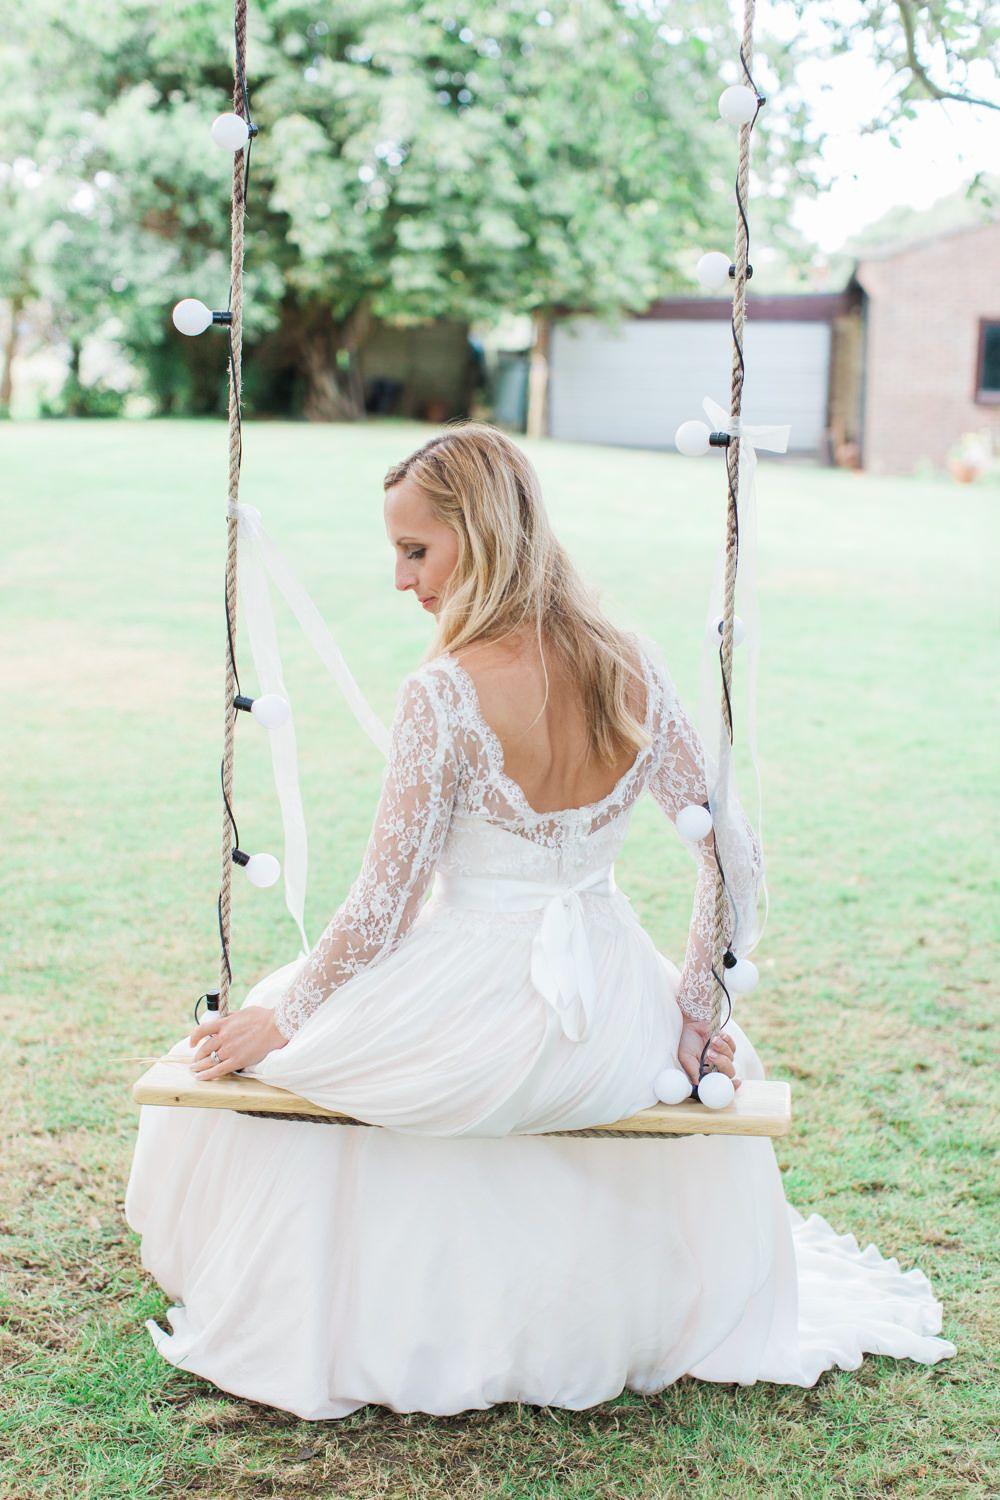 Bride sits on an outdoor garden swing with fairy lights -   Image by Camilla Arnhold - Naomi Neoh Fleur blush wedding dress for a beautiful peach and online dating themed back garden wedding with unique gift ideas for bridesmaids